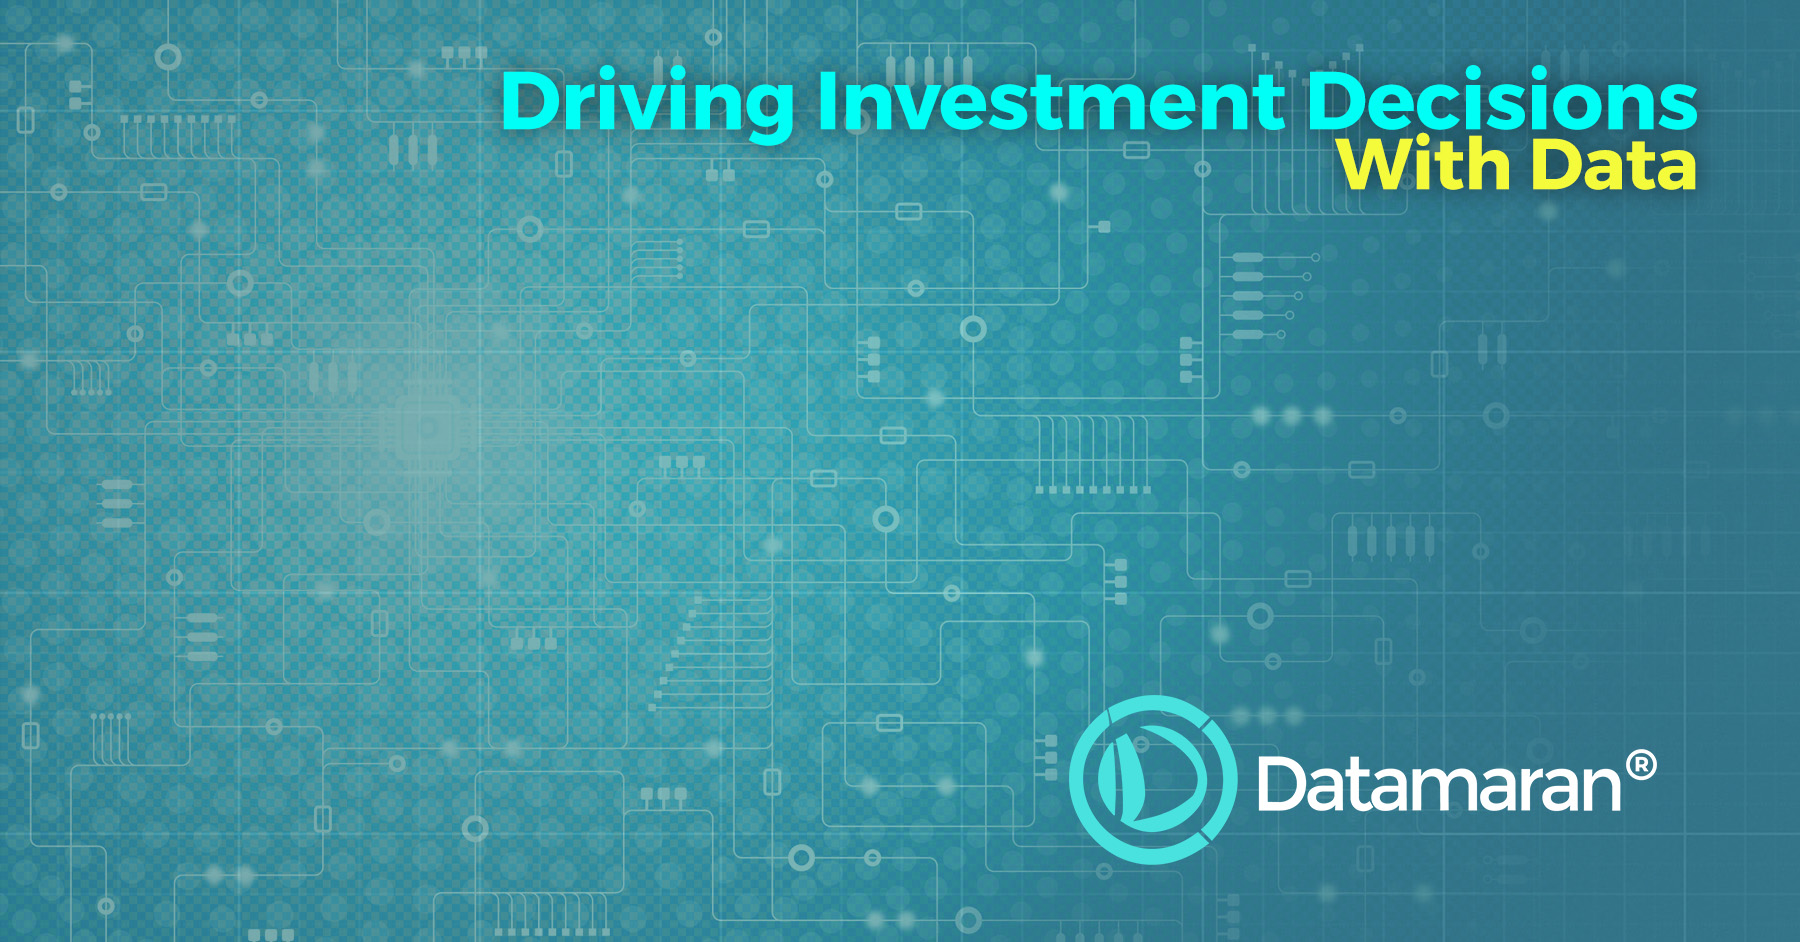 Data driven investment